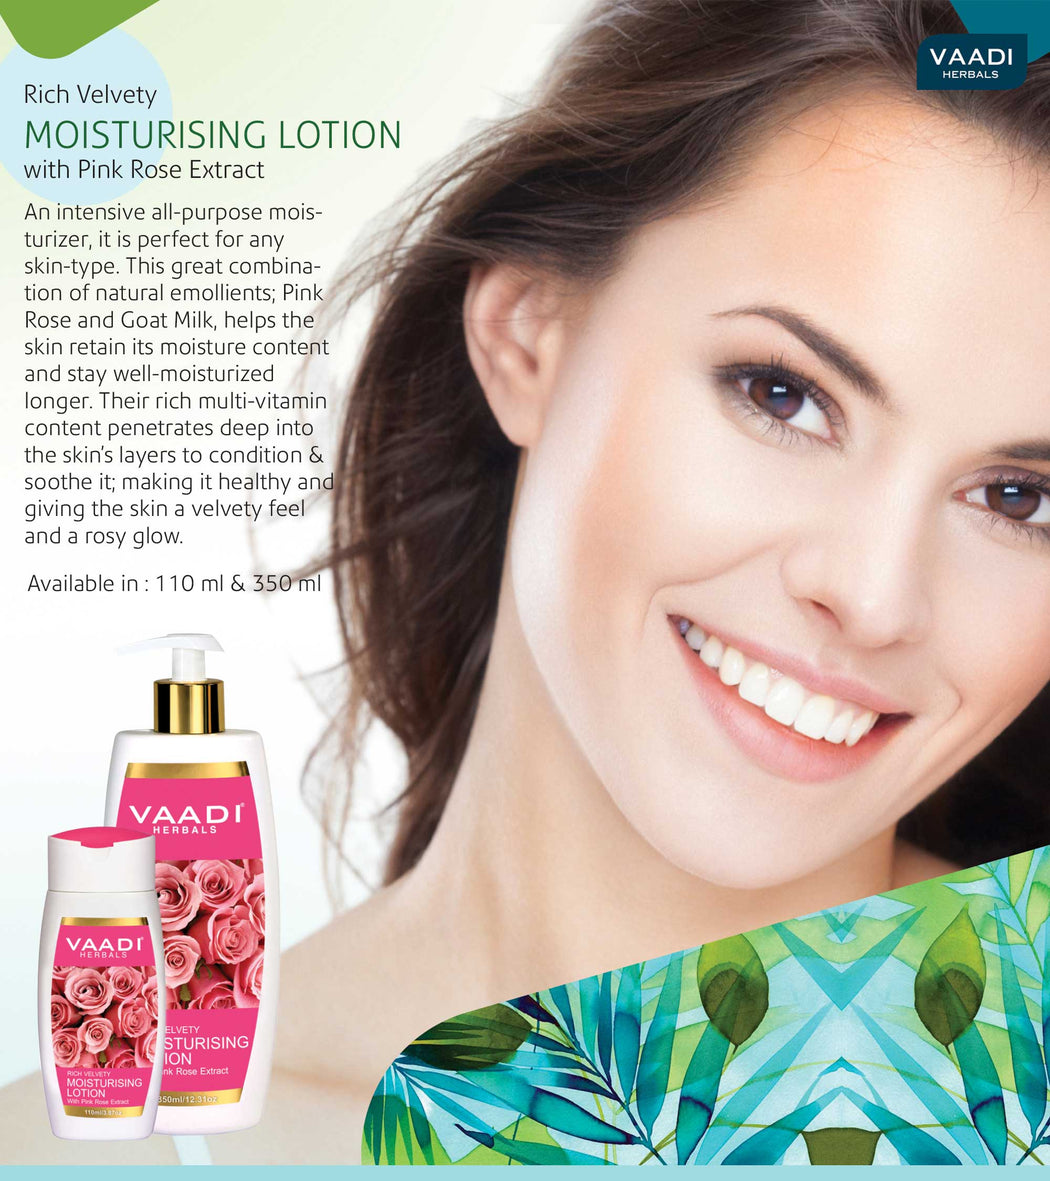 Moisturising Lotion With Pink Rose Extract (110 ml)